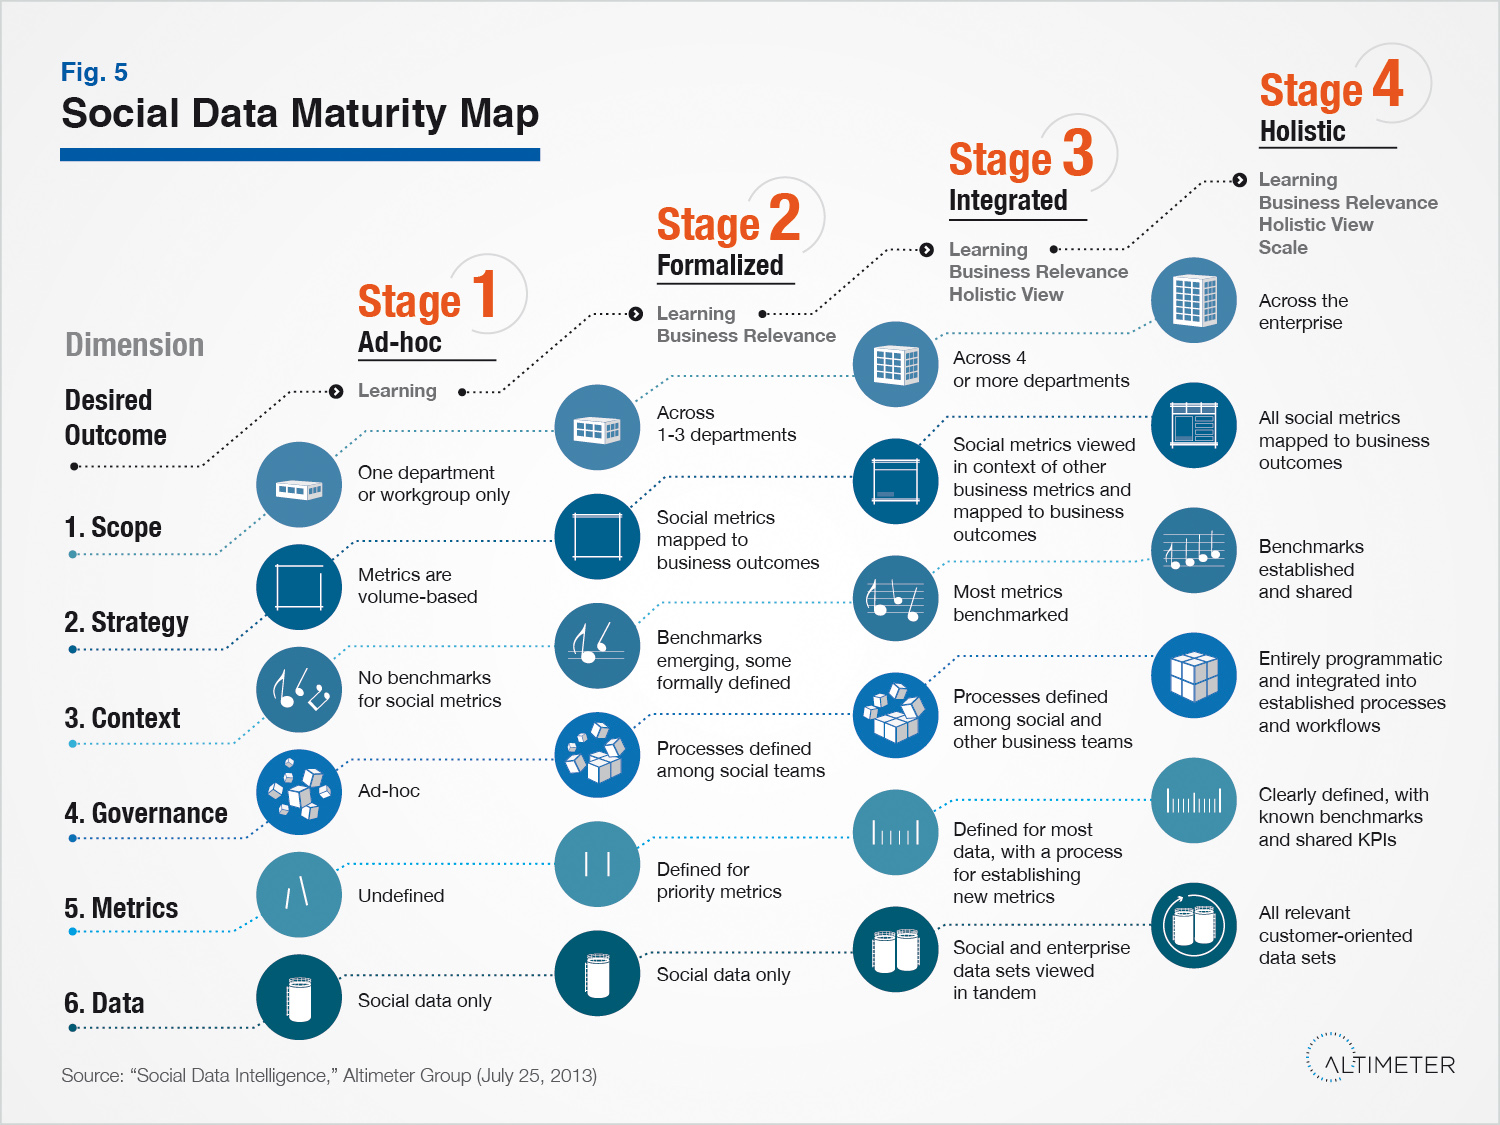 Social Data Maturity Map by Susan Etlinger / Altimeter Group